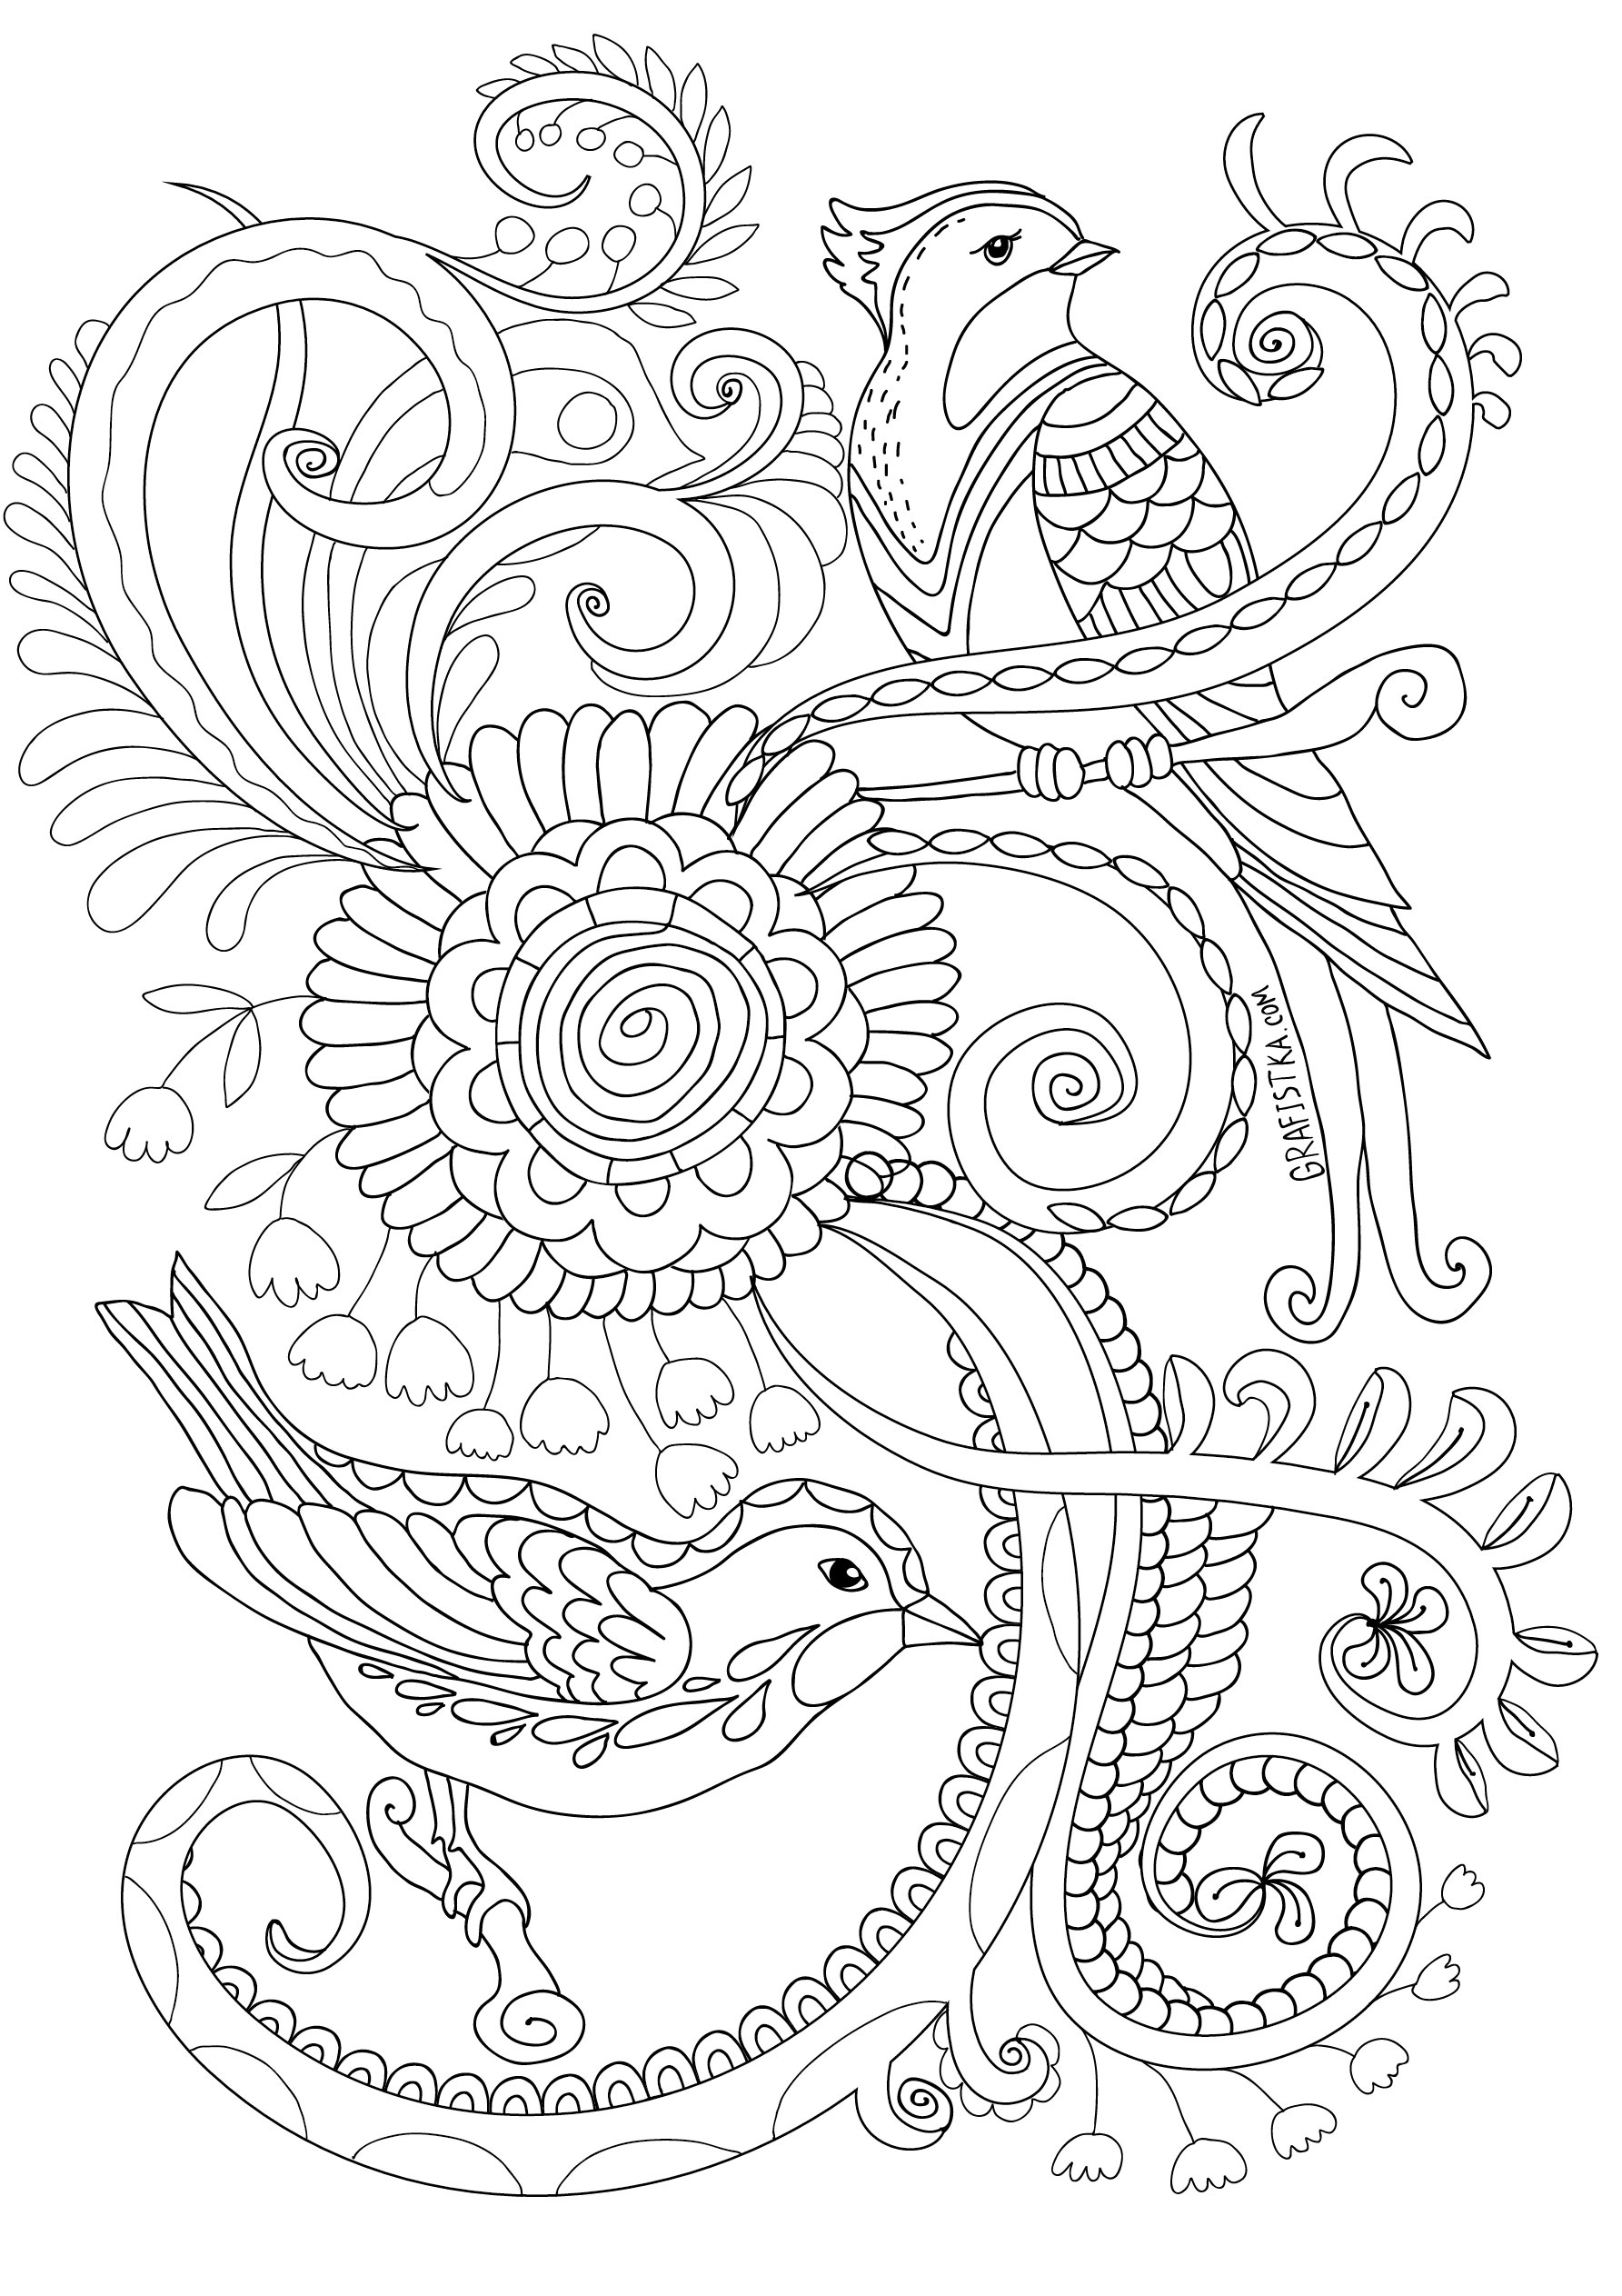 Le dessin anti stress - Coloriage anti stress a imprimer ...